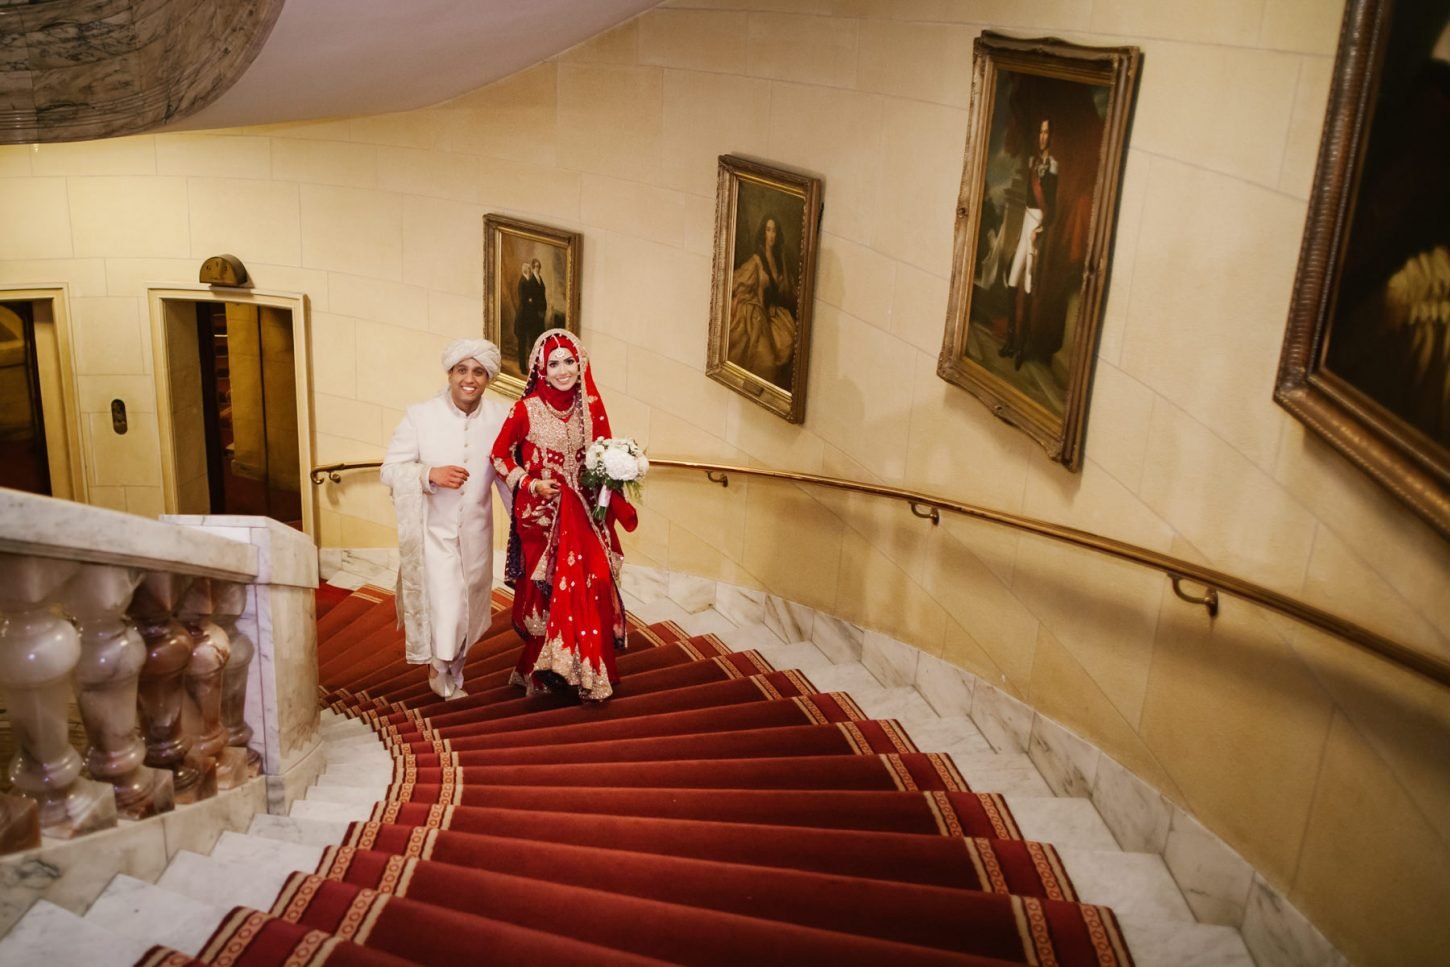 The married couple is smiling while walking upstairs at the Royal Horseguards Hotel.